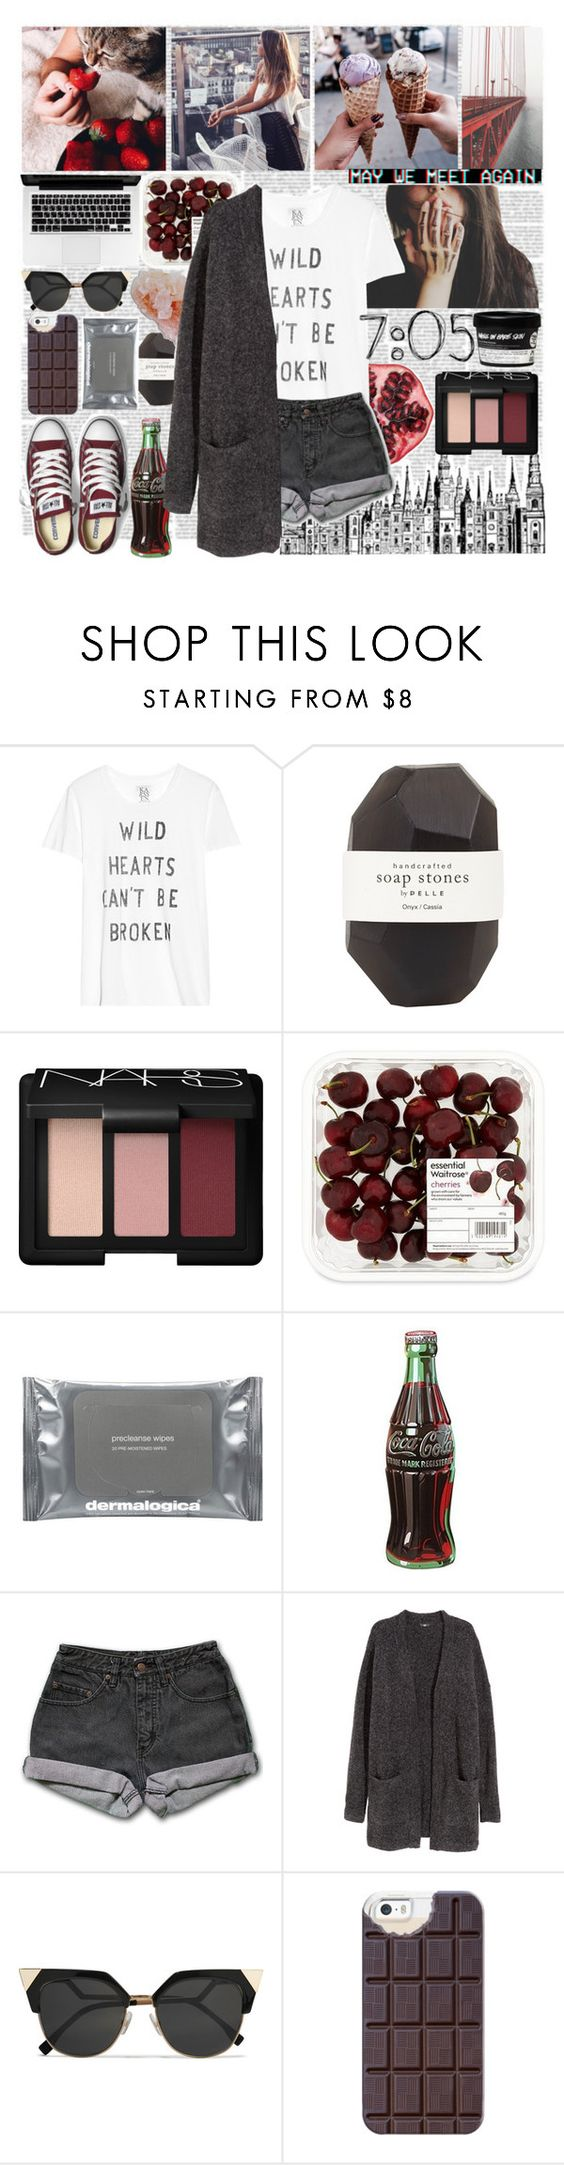 """We Both Can't Take A Compliment"" by nsrogsy3 ❤ liked on Polyvore featuring Zoe Karssen, Pelle, NARS Cosmetics, Dermalogica, Retrò, PèPè, H&M, Fendi, Casetify and Converse"